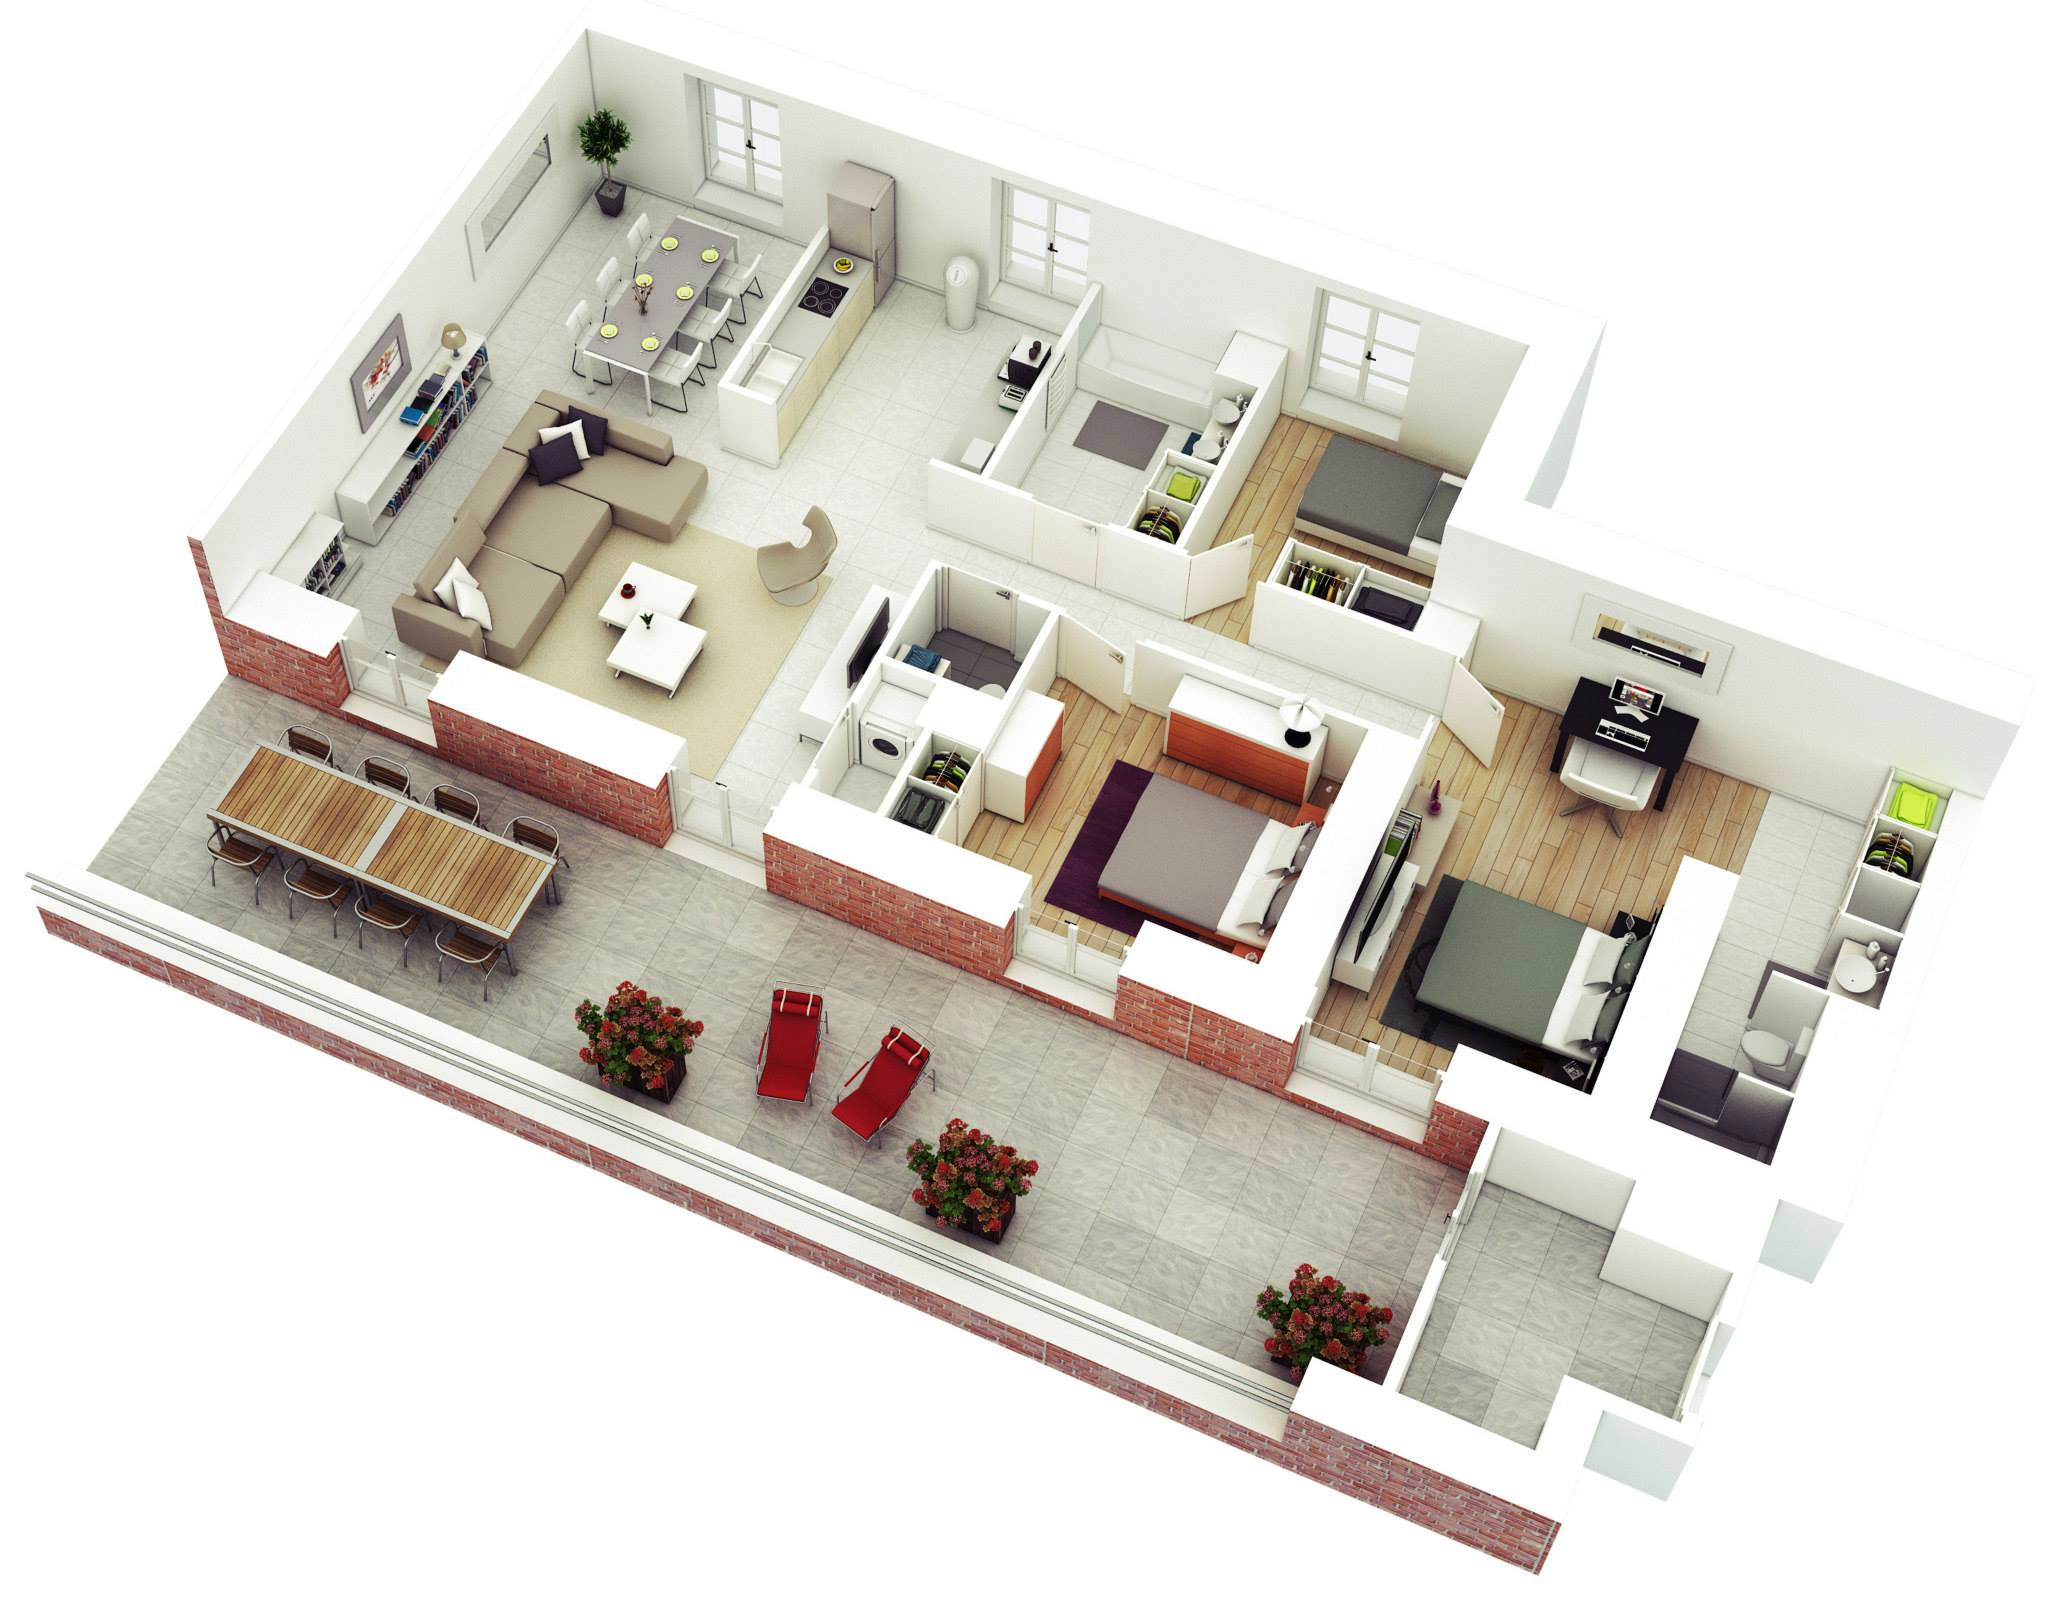 25 More 3 Bedroom 3D Floor Plans  D Home Design on houzz home design, painting home design, inside home design, kadalla home design, philippines home design, house design, architecture home design, home app design, interior design, ground floor home design, 5d home design, 2d home design, french home design, asian home design, modern home design, sketchup home design, indian home design, black home design, 4d home design, create online home design,